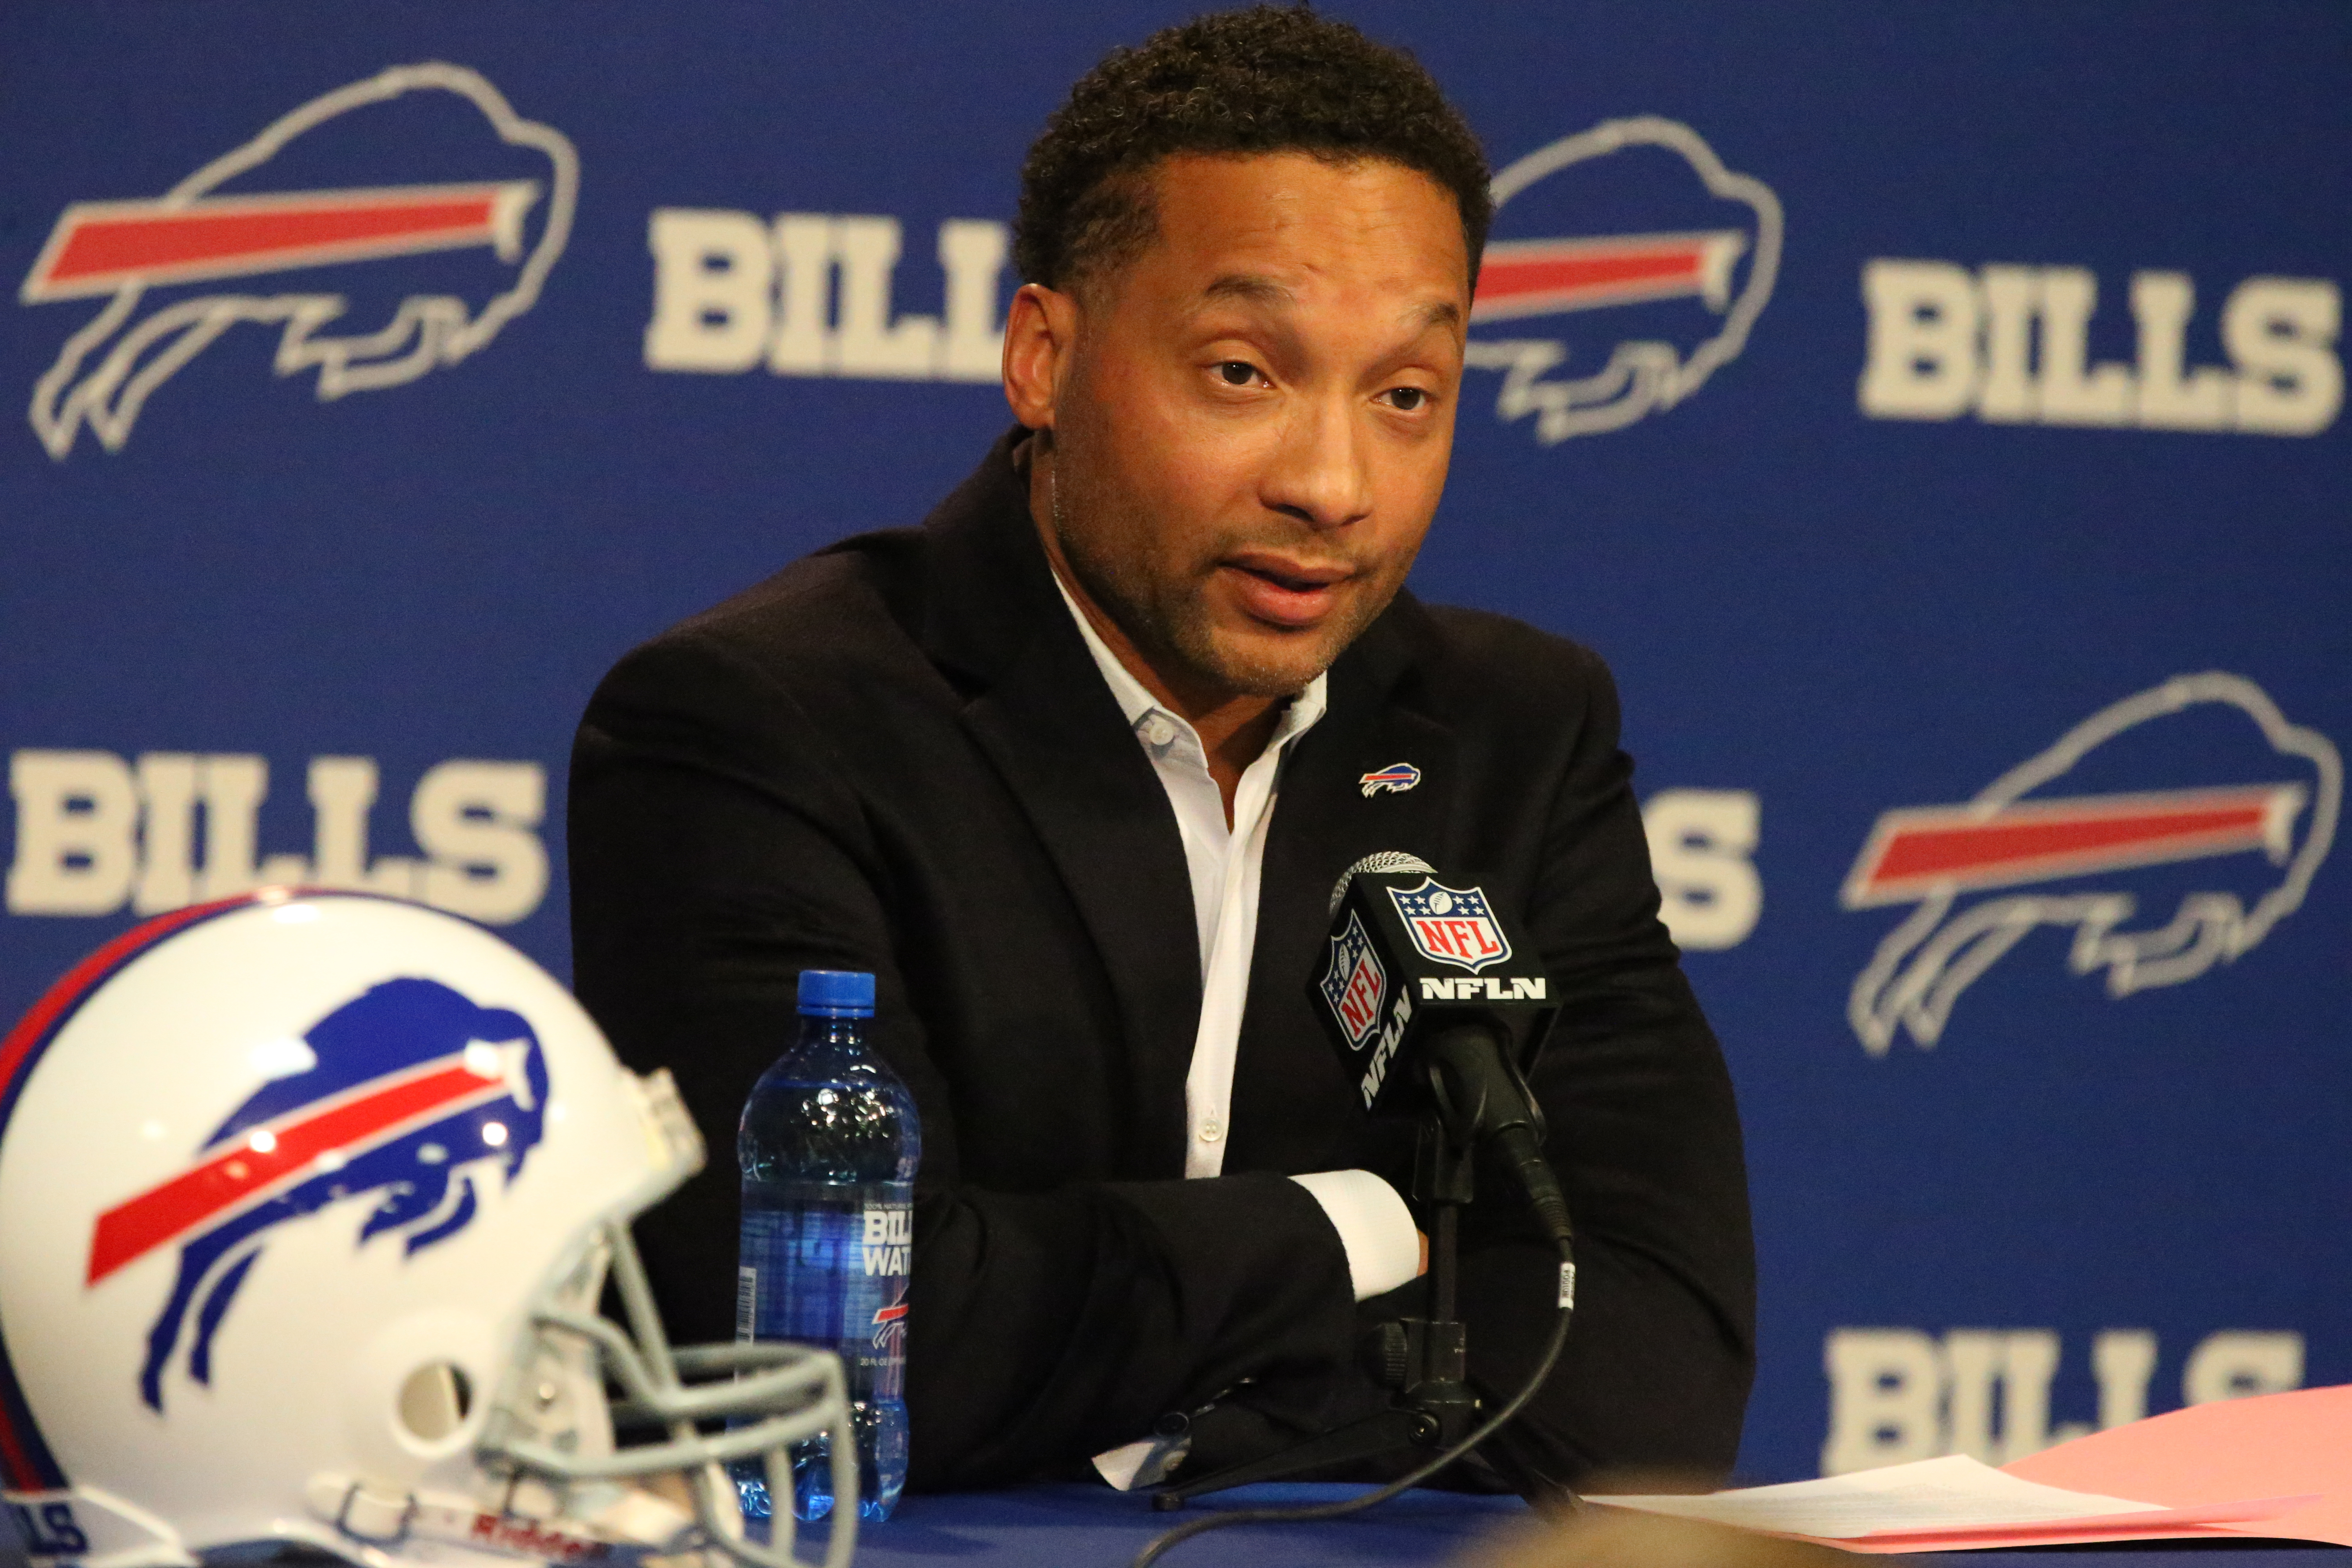 Buffalo Bills General Manager Doug Whaley addresses the press during the end-of-year news conference at ADPRO Sports Training Center in Orchard Park on Jan. 2, 2017. (James P. McCoy/Buffalo News)